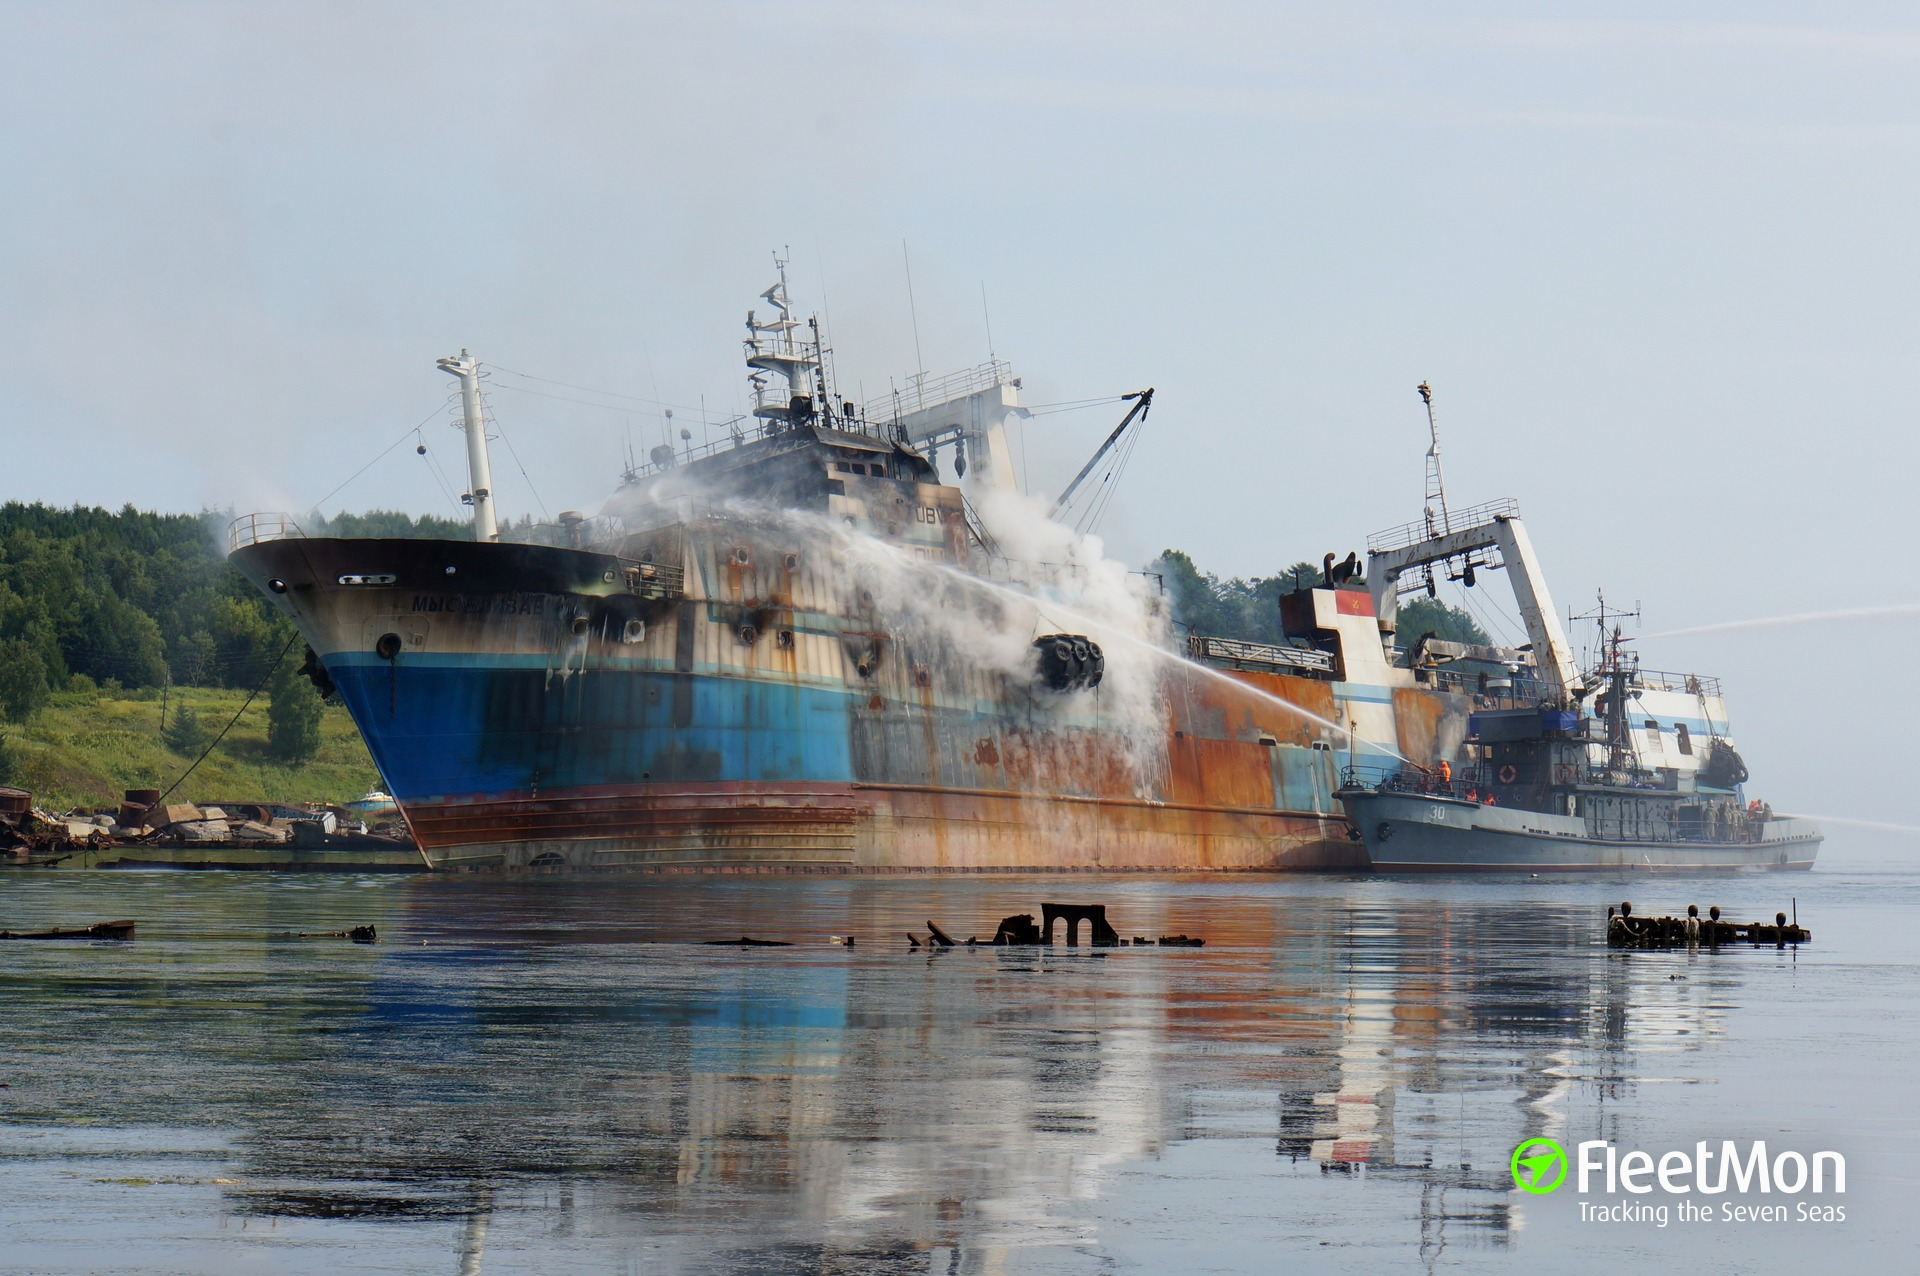 Major fire on board of trawler Mys Elizavety, Japan sea